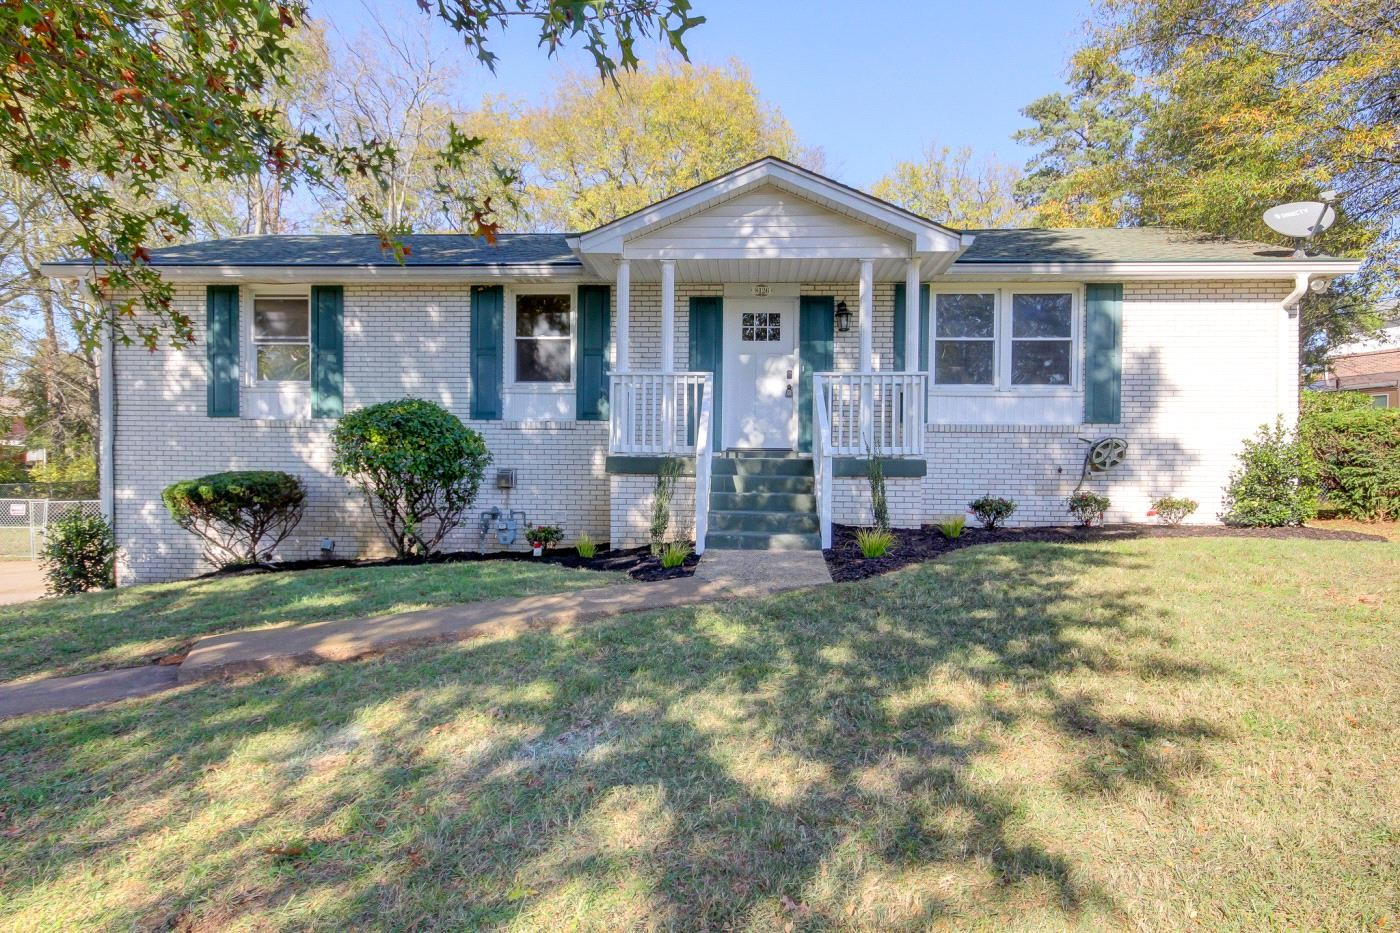 8126 Luree Ln, Hermitage in Davidson County County, TN 37076 Home for Sale